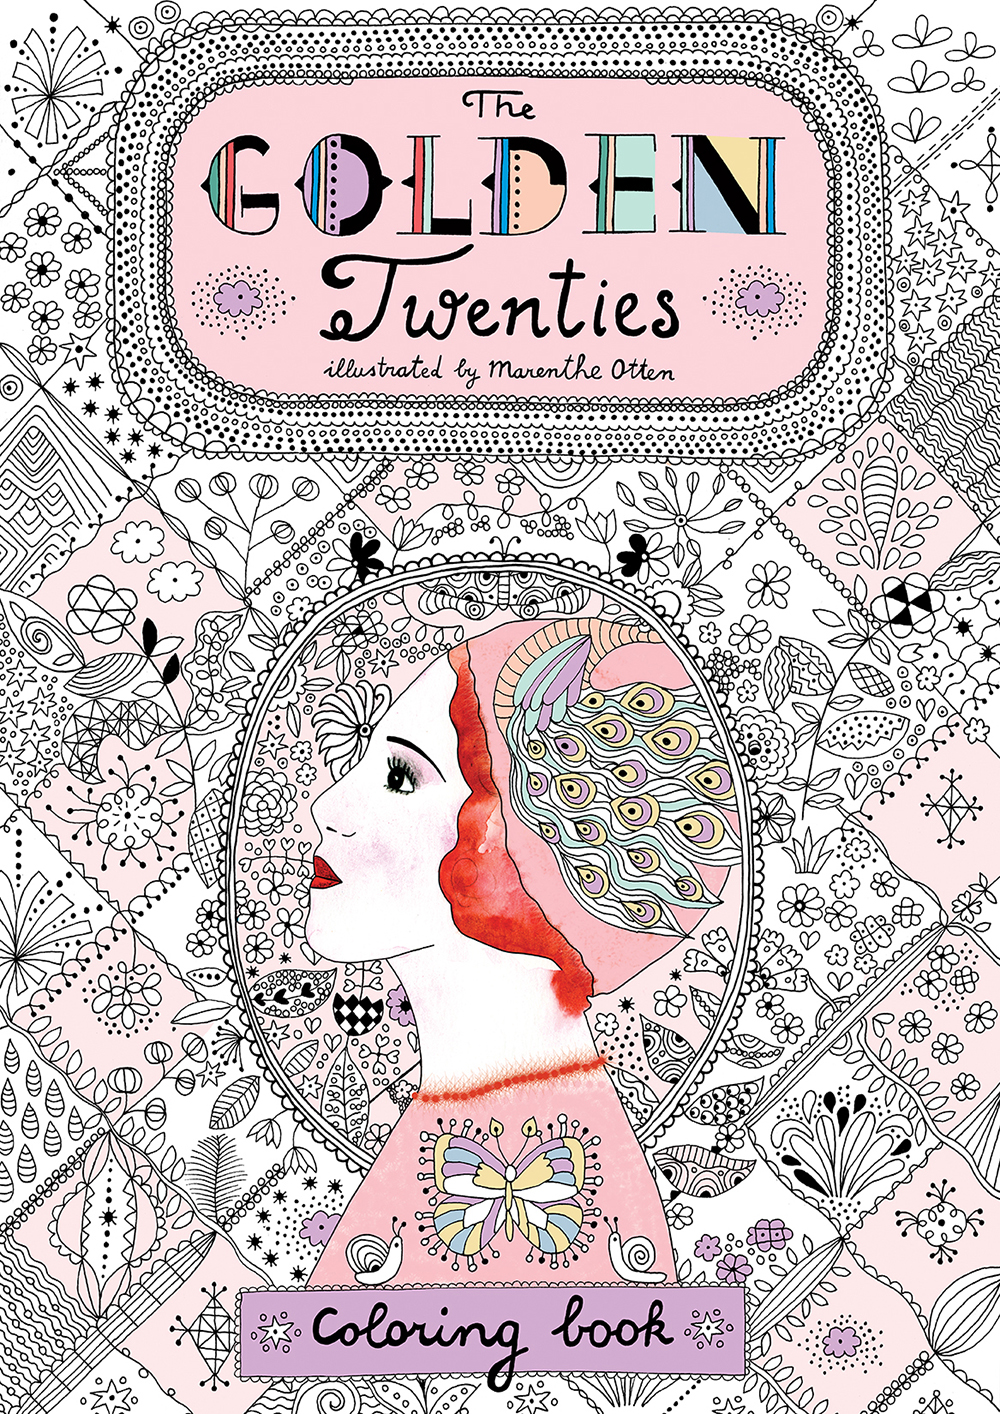 Marenthe Golden Twenties illustration Coloring book.jpg